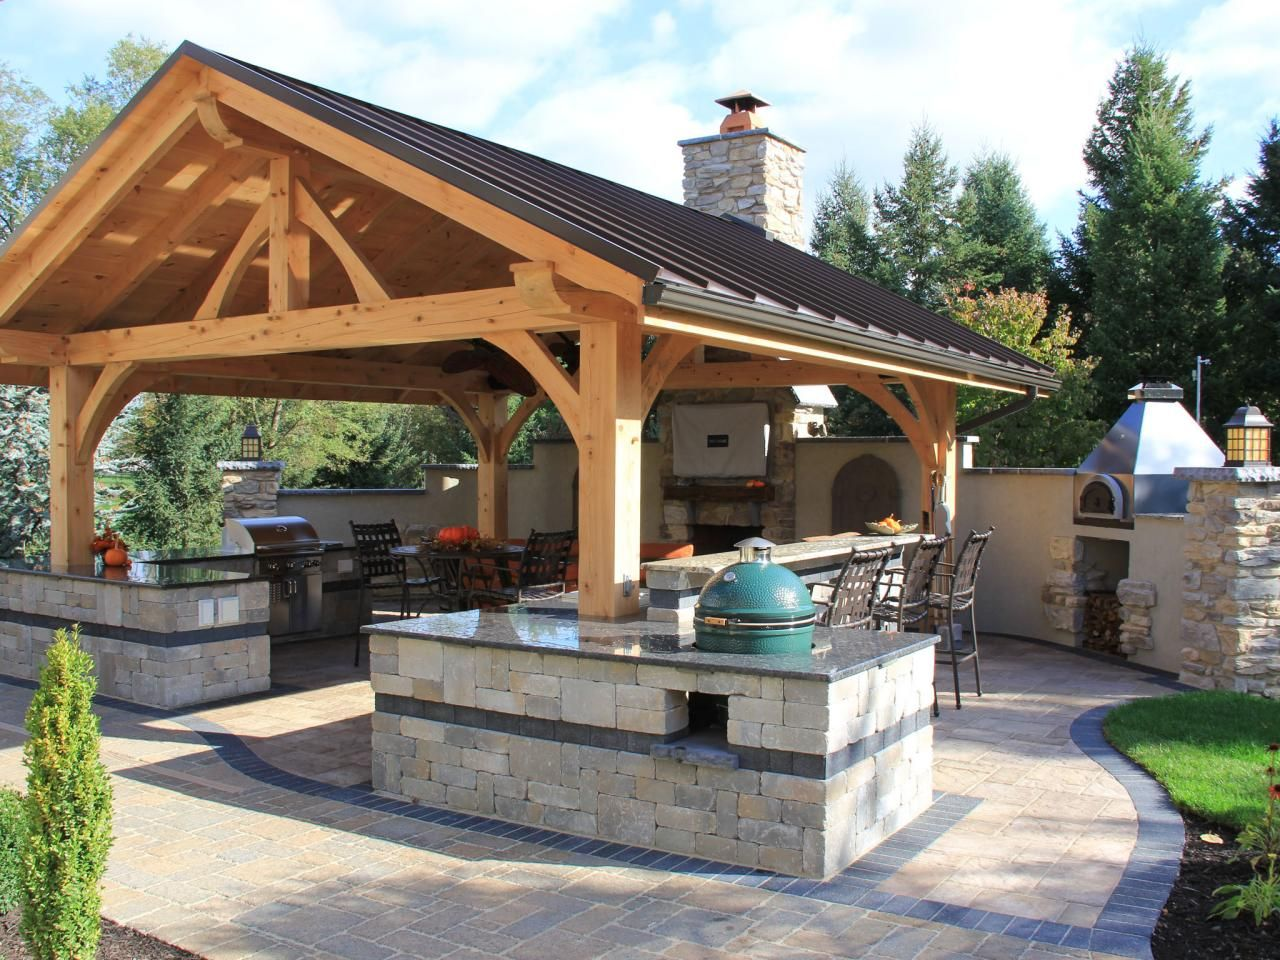 Outdoor Kitchen Pictures diy outdoor kitchen plans free | plan every aspect of the